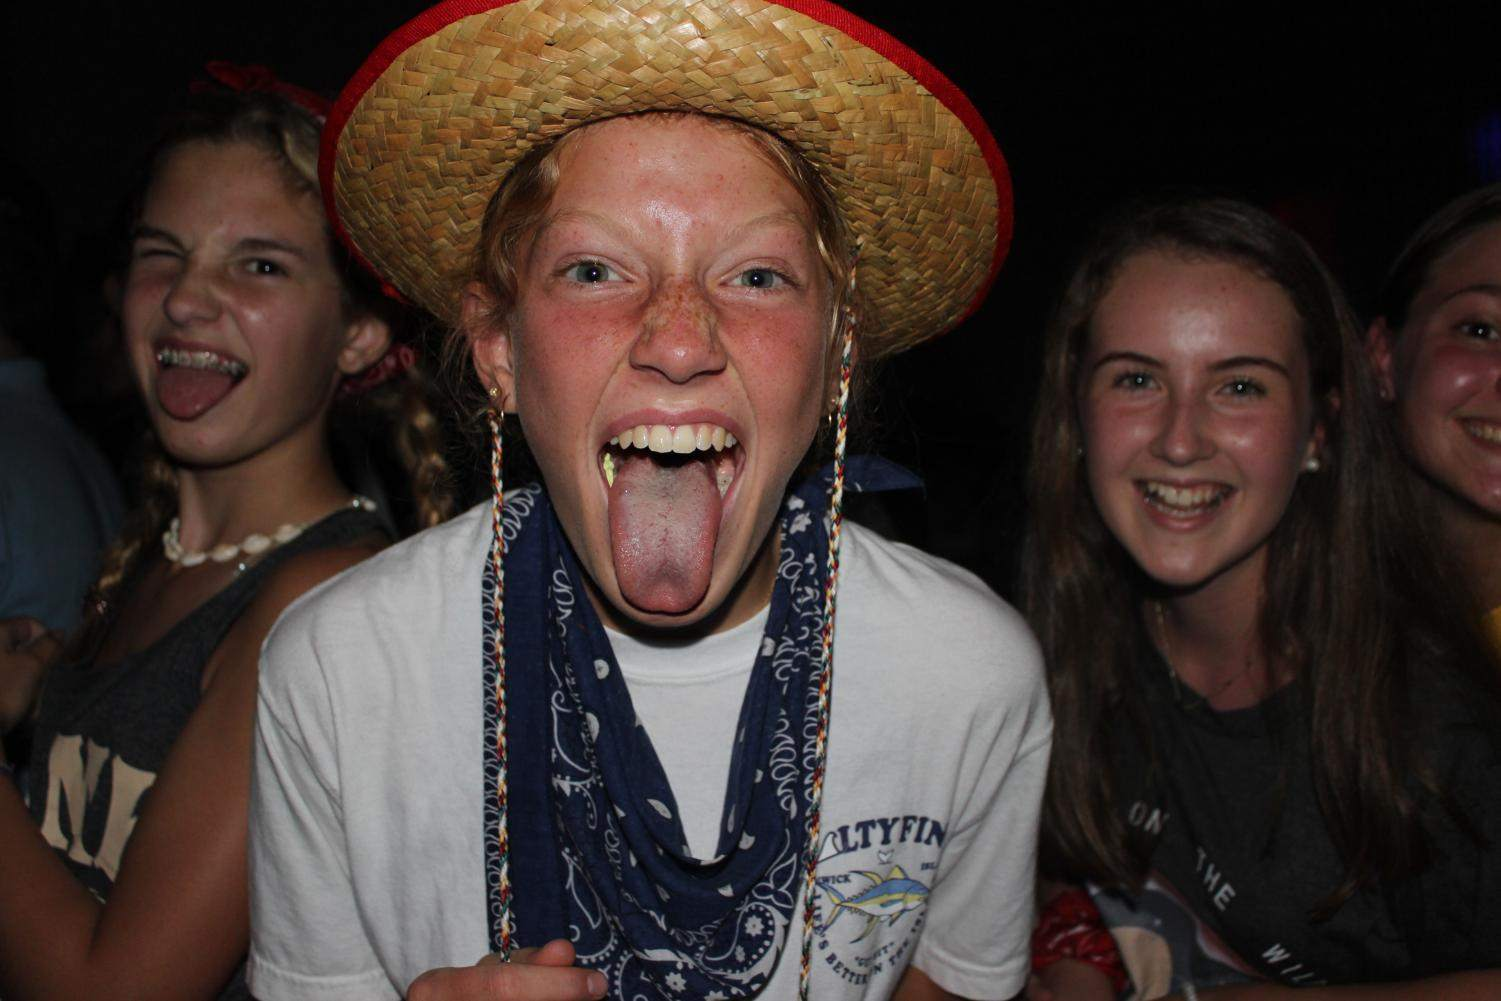 Sophmore, Ella Burke, showing her country spirit